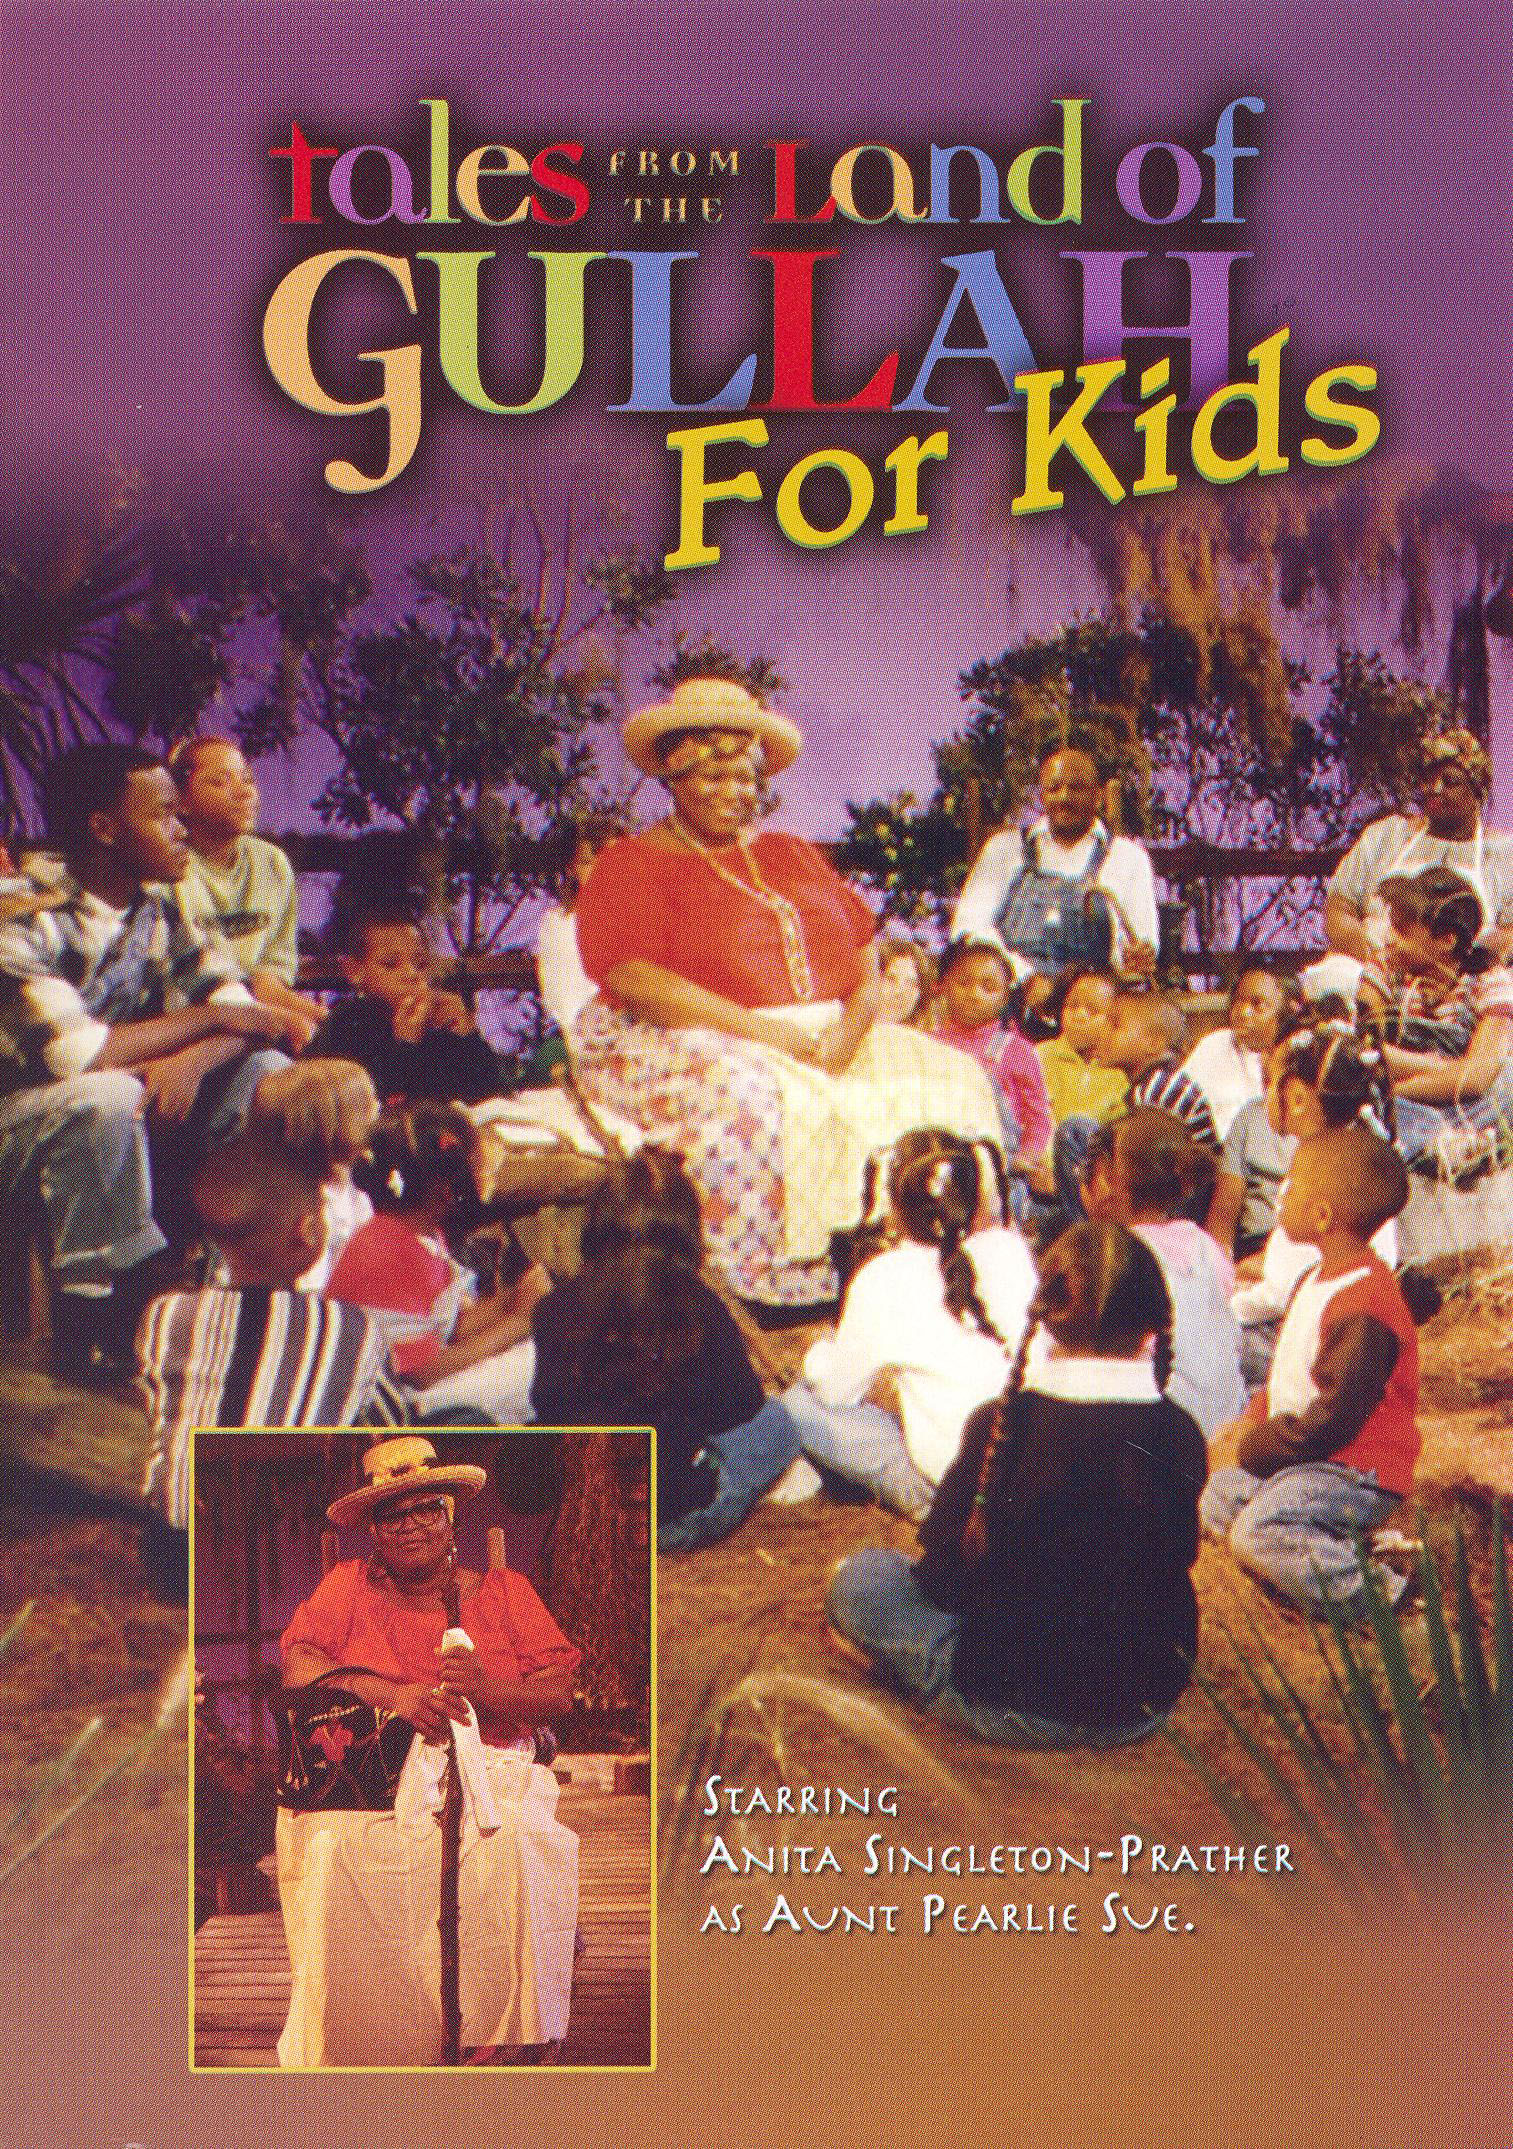 Tales From the Land of Gullah for Kids